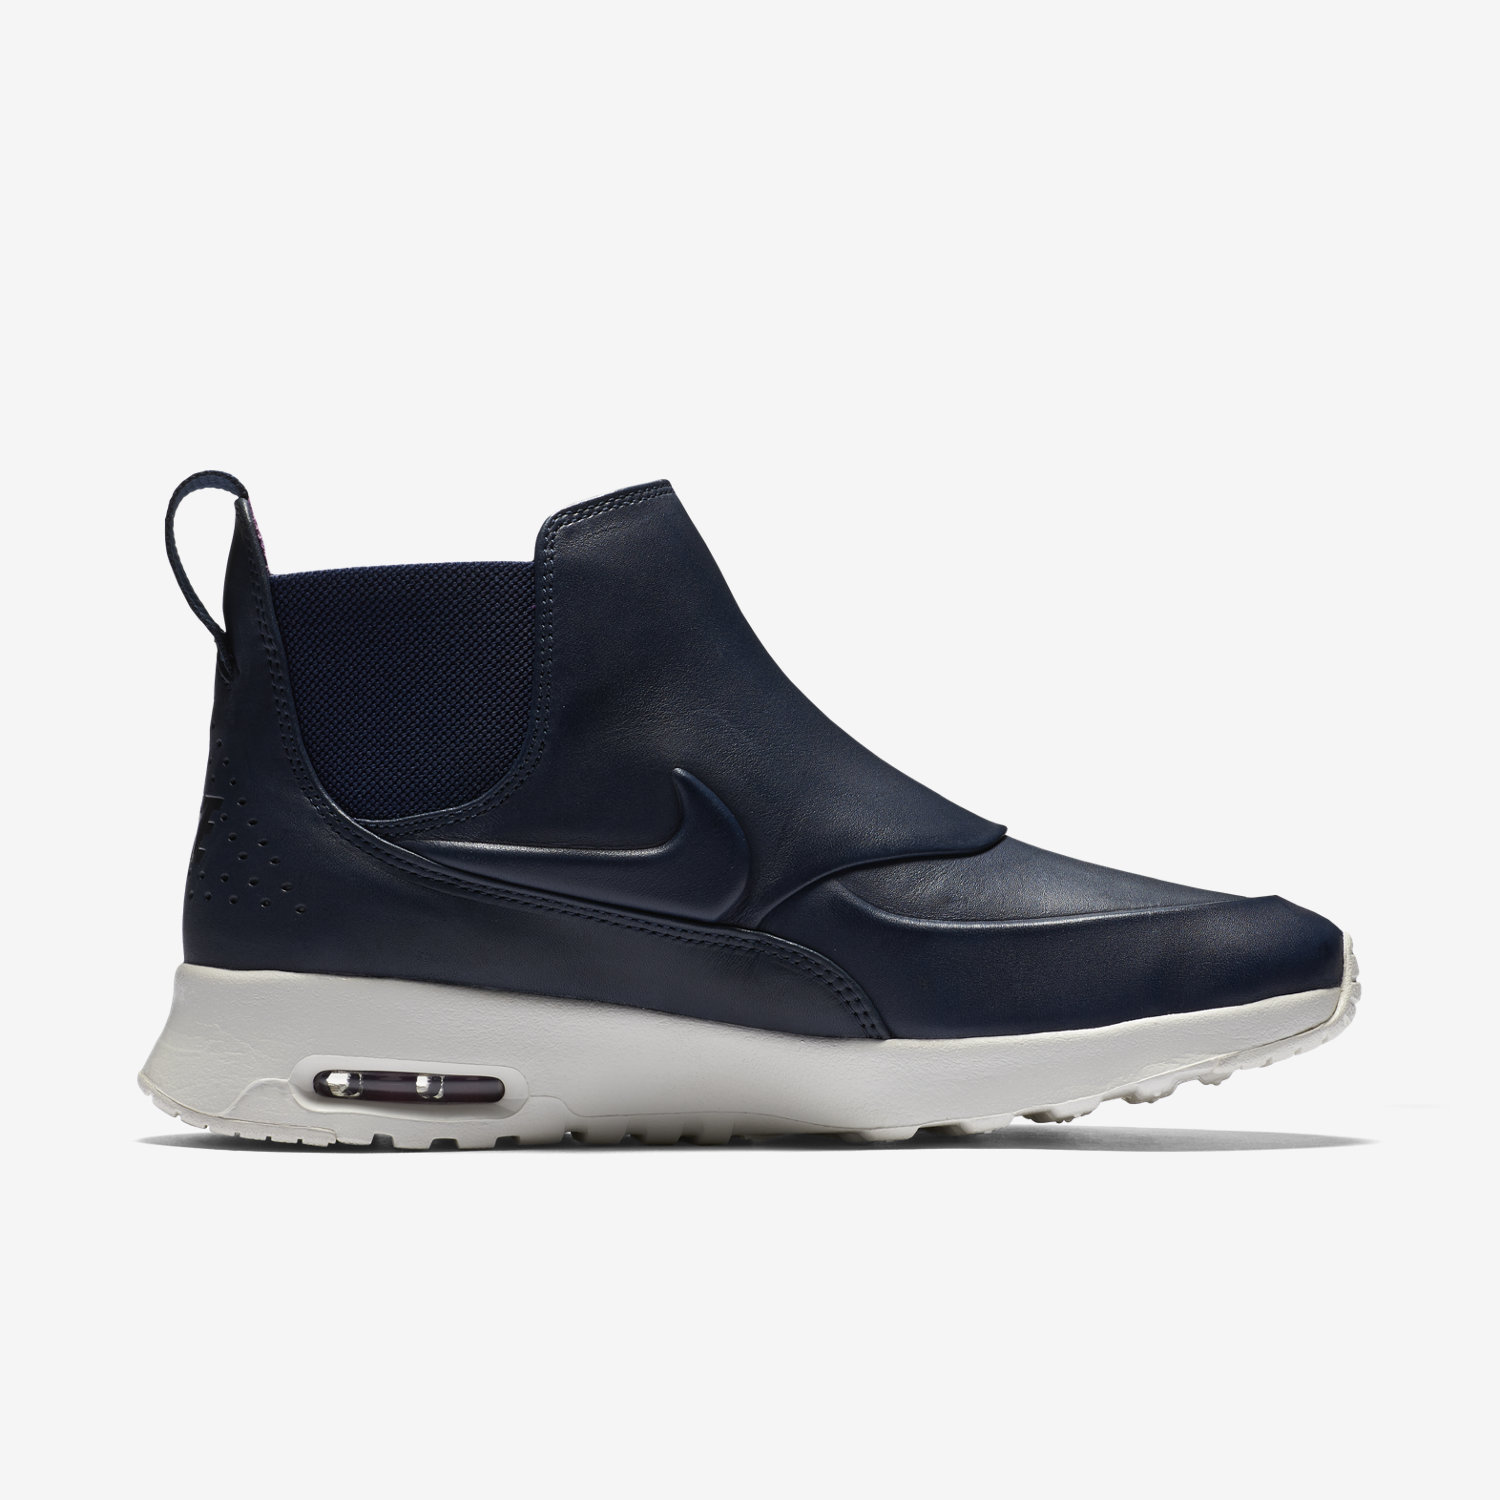 nike air max thea vancouver. Black Bedroom Furniture Sets. Home Design Ideas